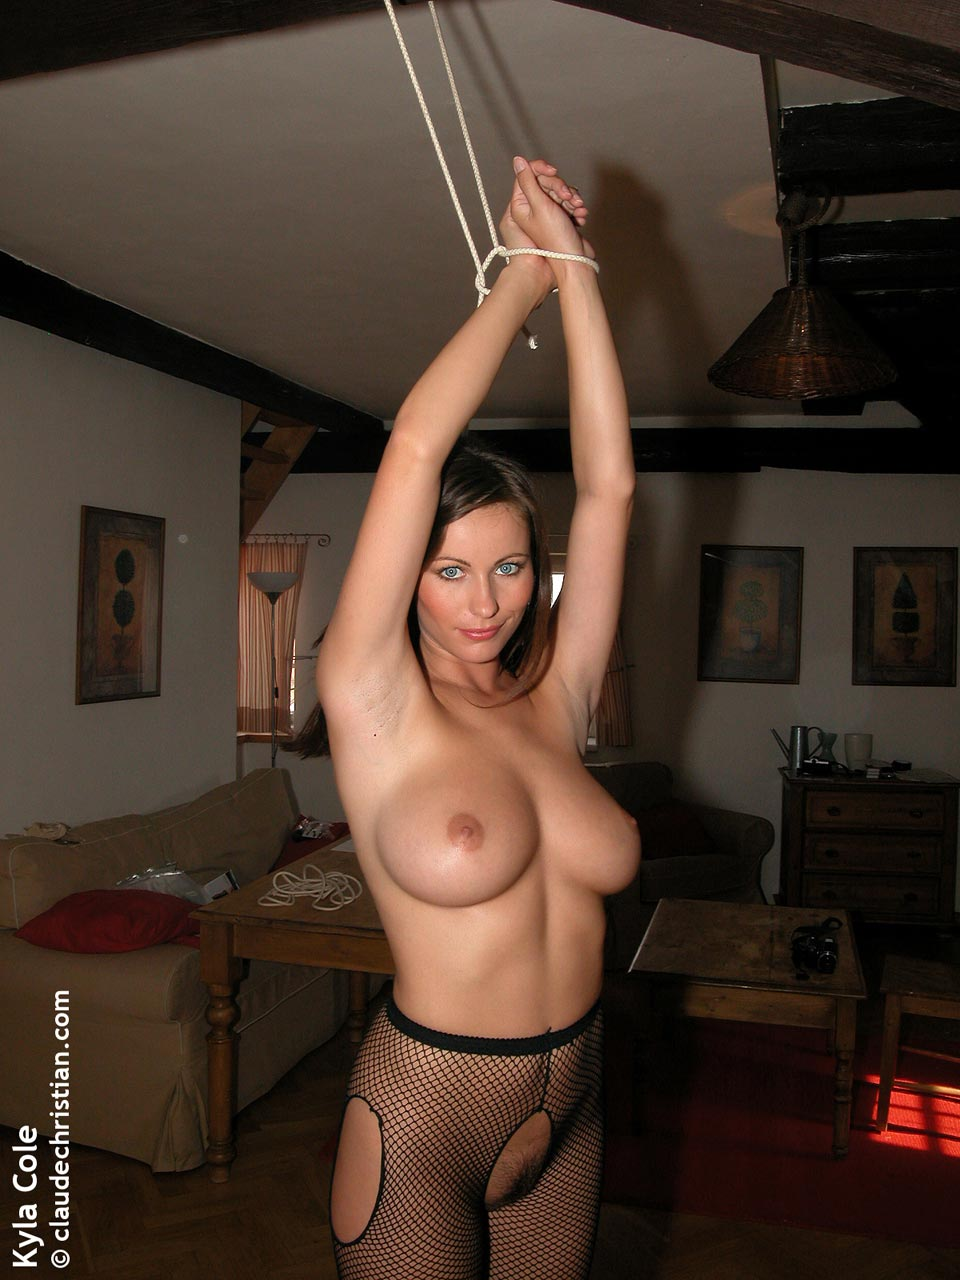 Kyla Cole tied up showing her busty perky tits more in